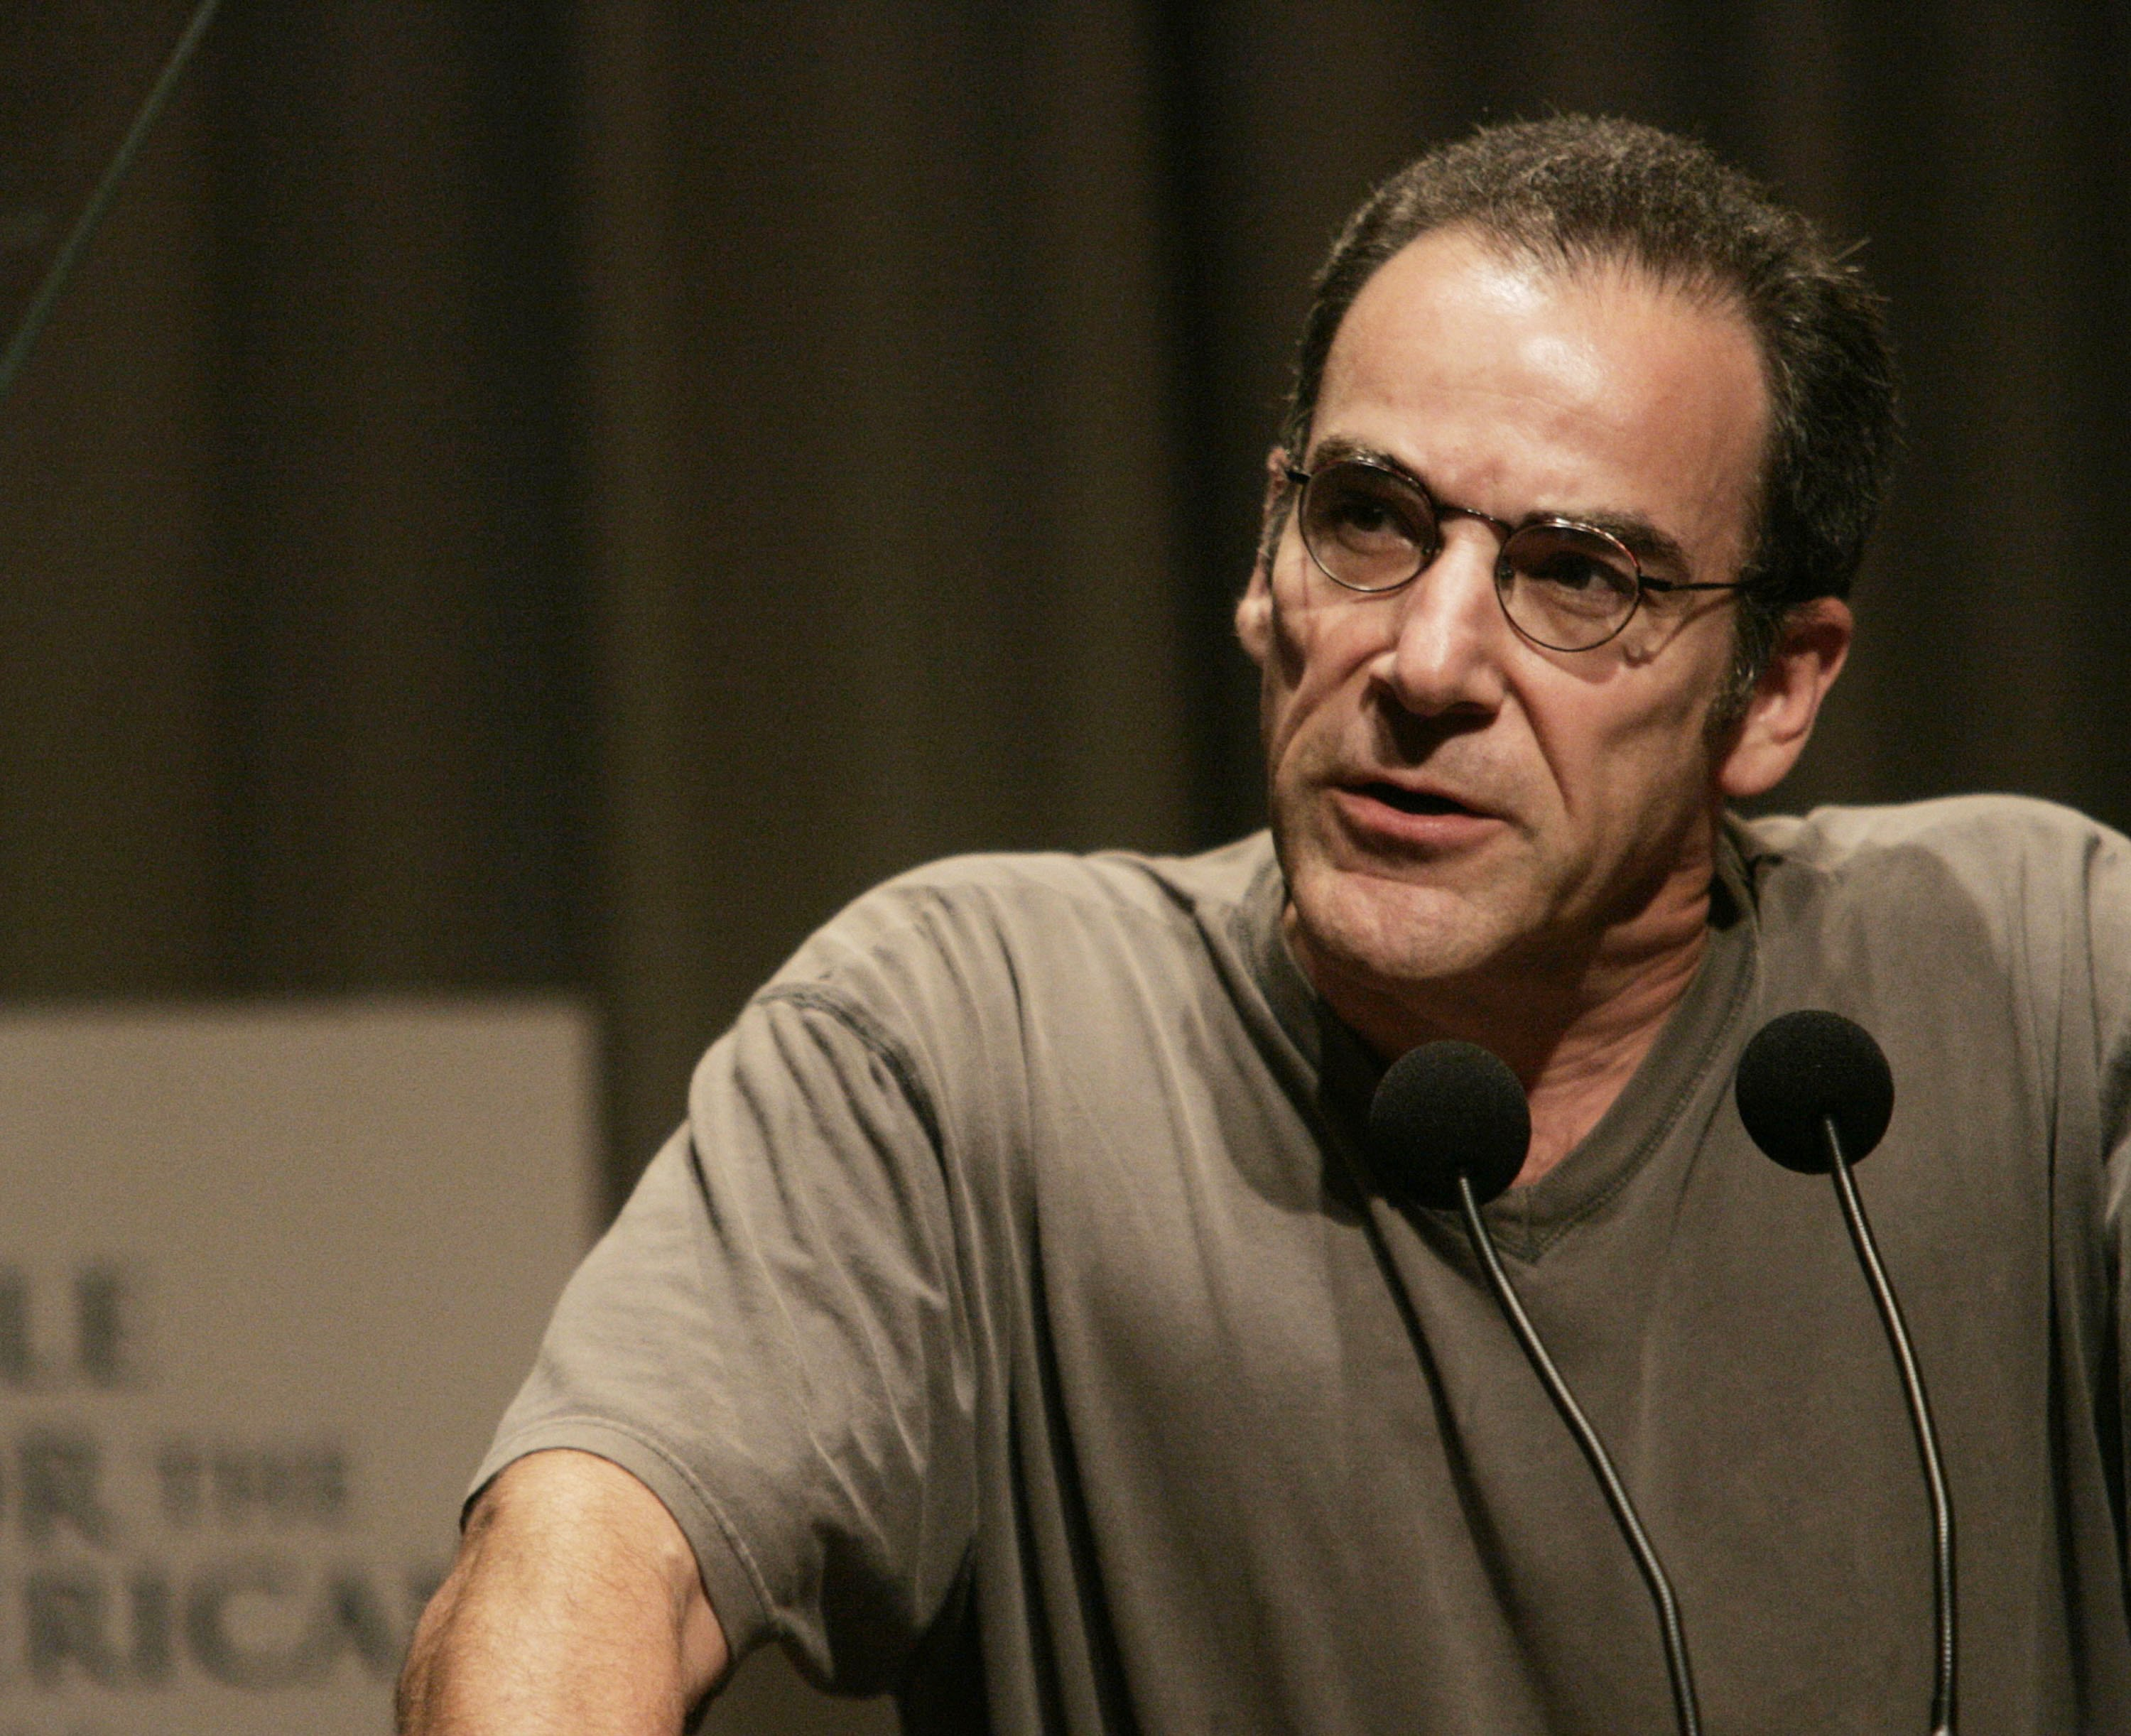 Mandy Patinkin, U.S. Constitution at Cooper Union, 2004 | Quelle: Getty Images